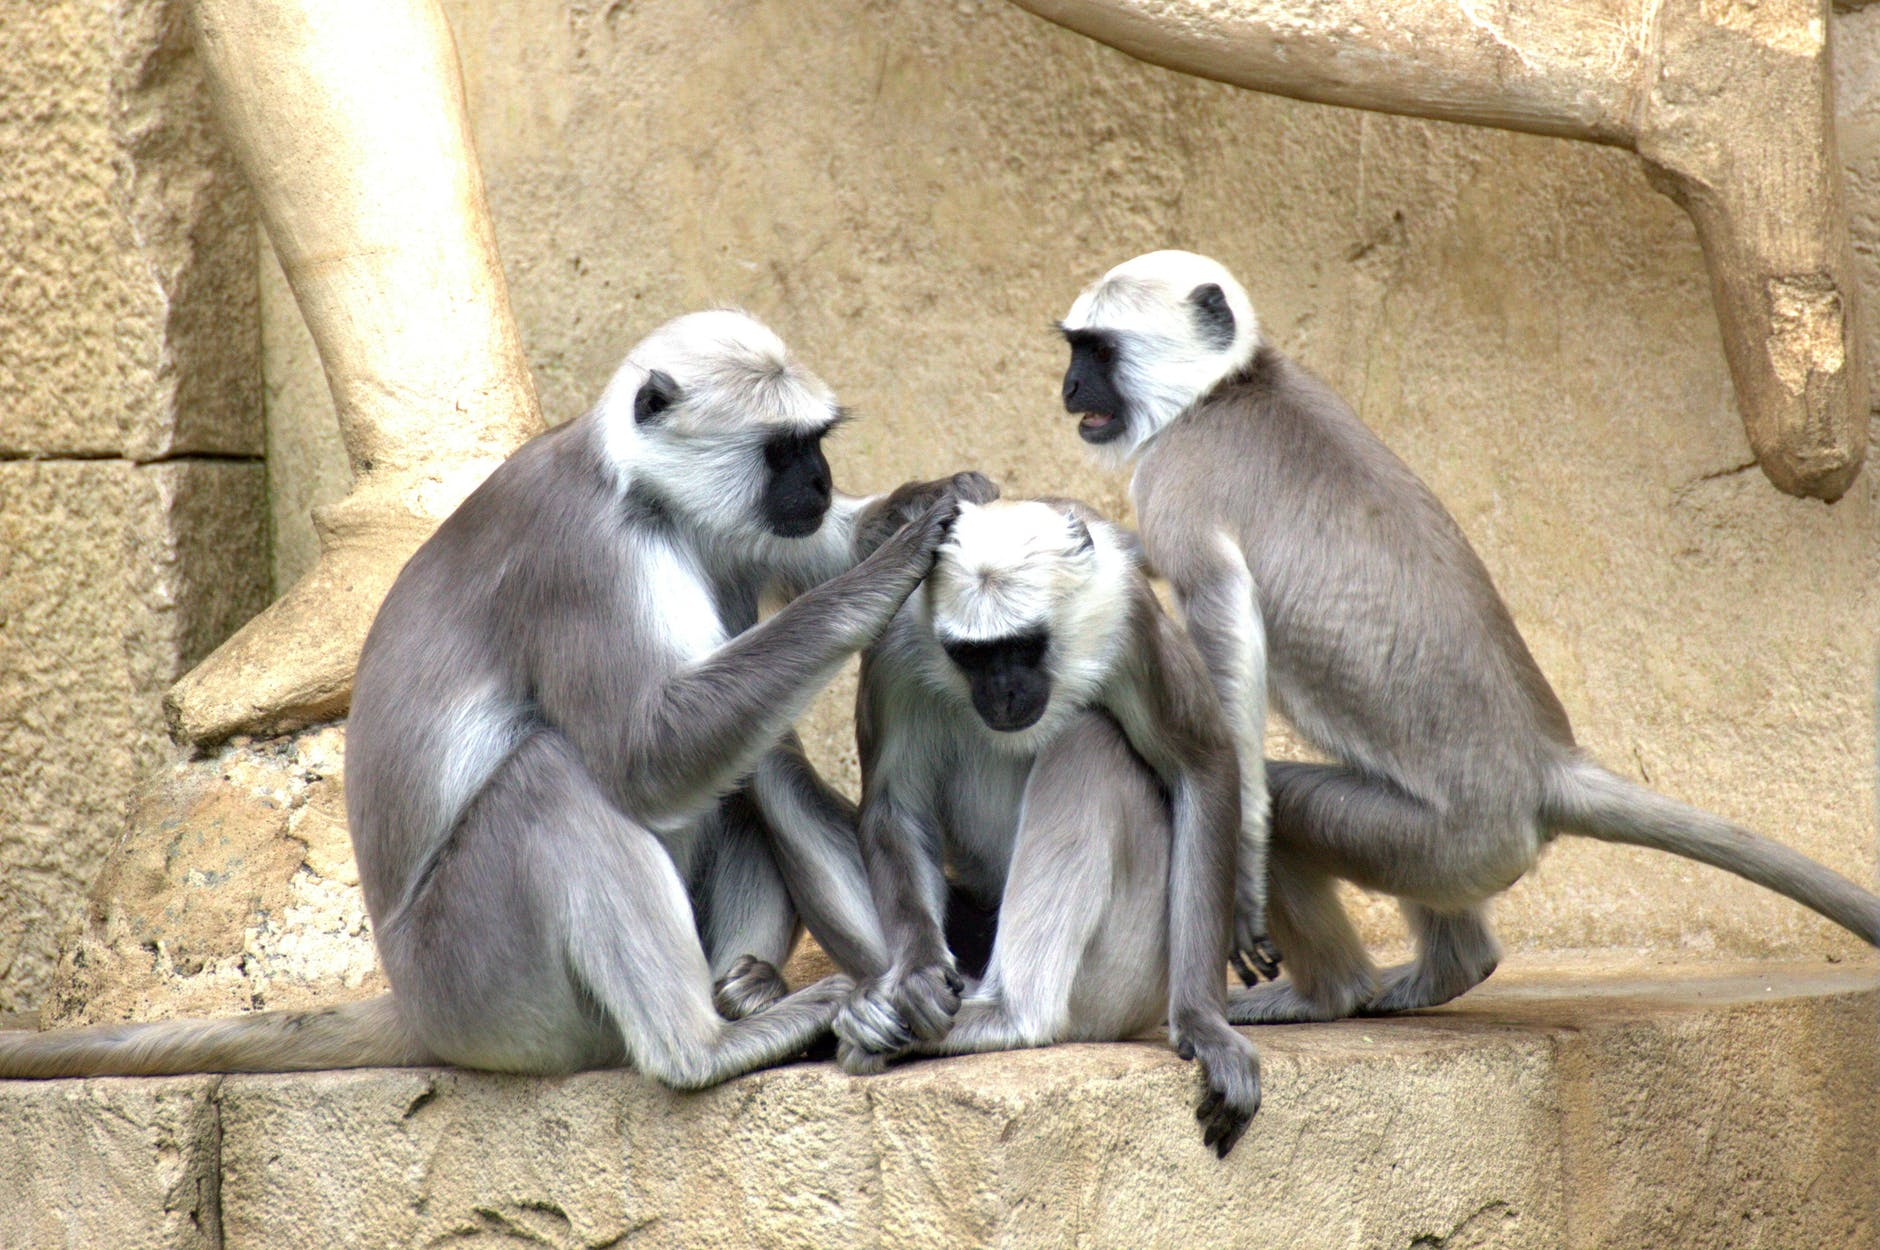 grey and white black faced monkeys picking lice from each other.